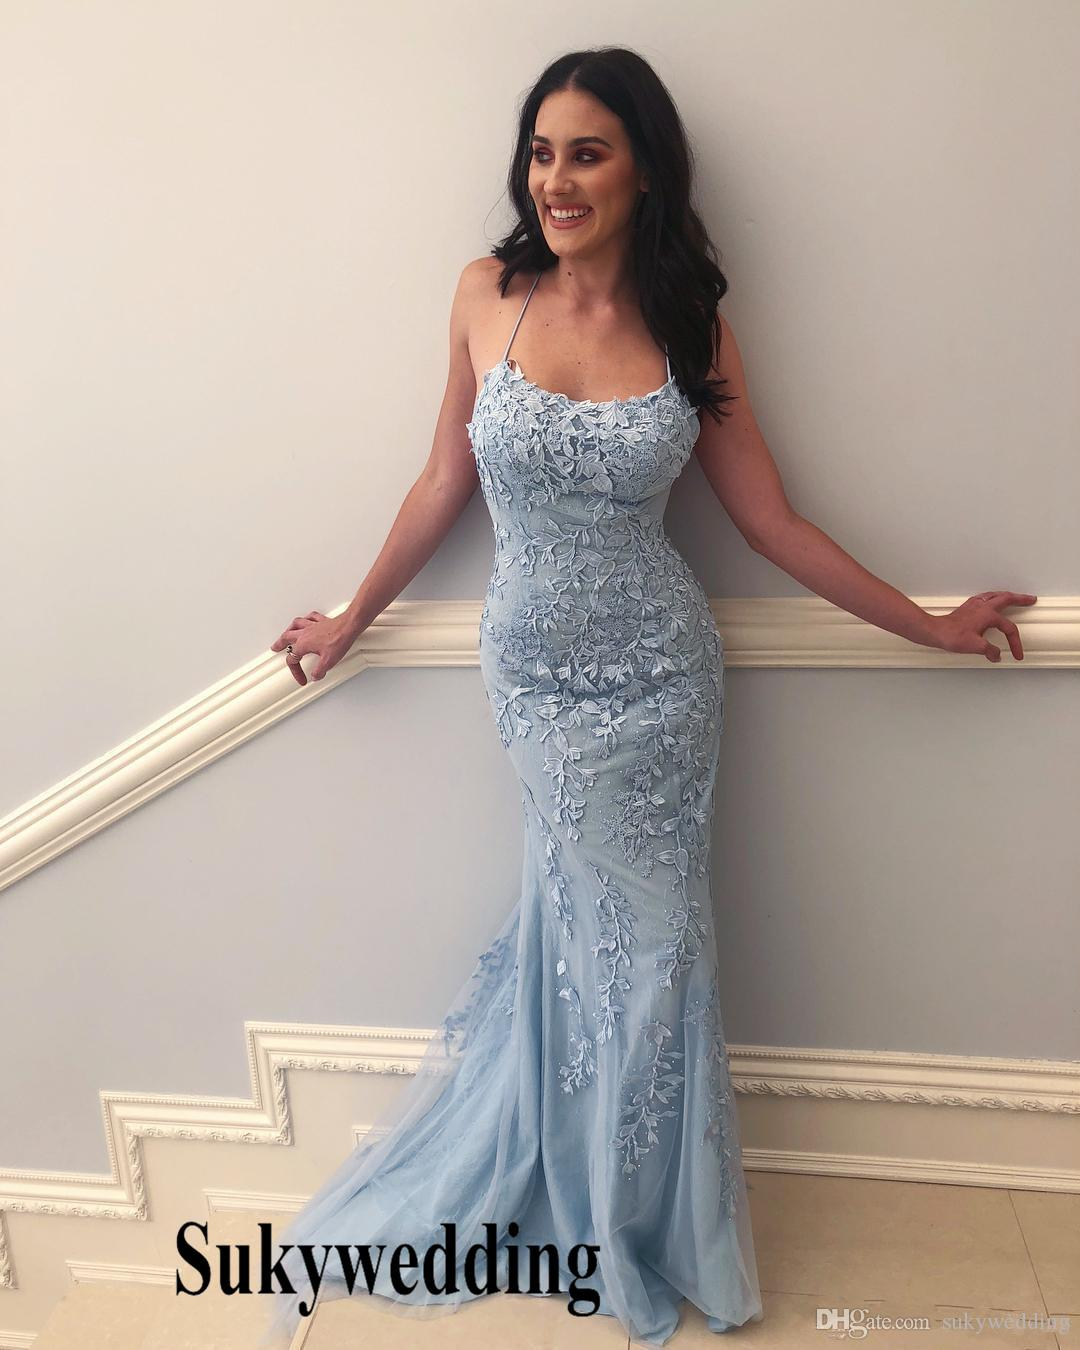 Baby Blue Mermaid Prom Dresses With White Lace Appliques Formal Evening  Gowns Pleats Pageant Dresses Long Sweep Train Robe De Soiree Elegant Prom  Dresses ... e38afa6d5cf2